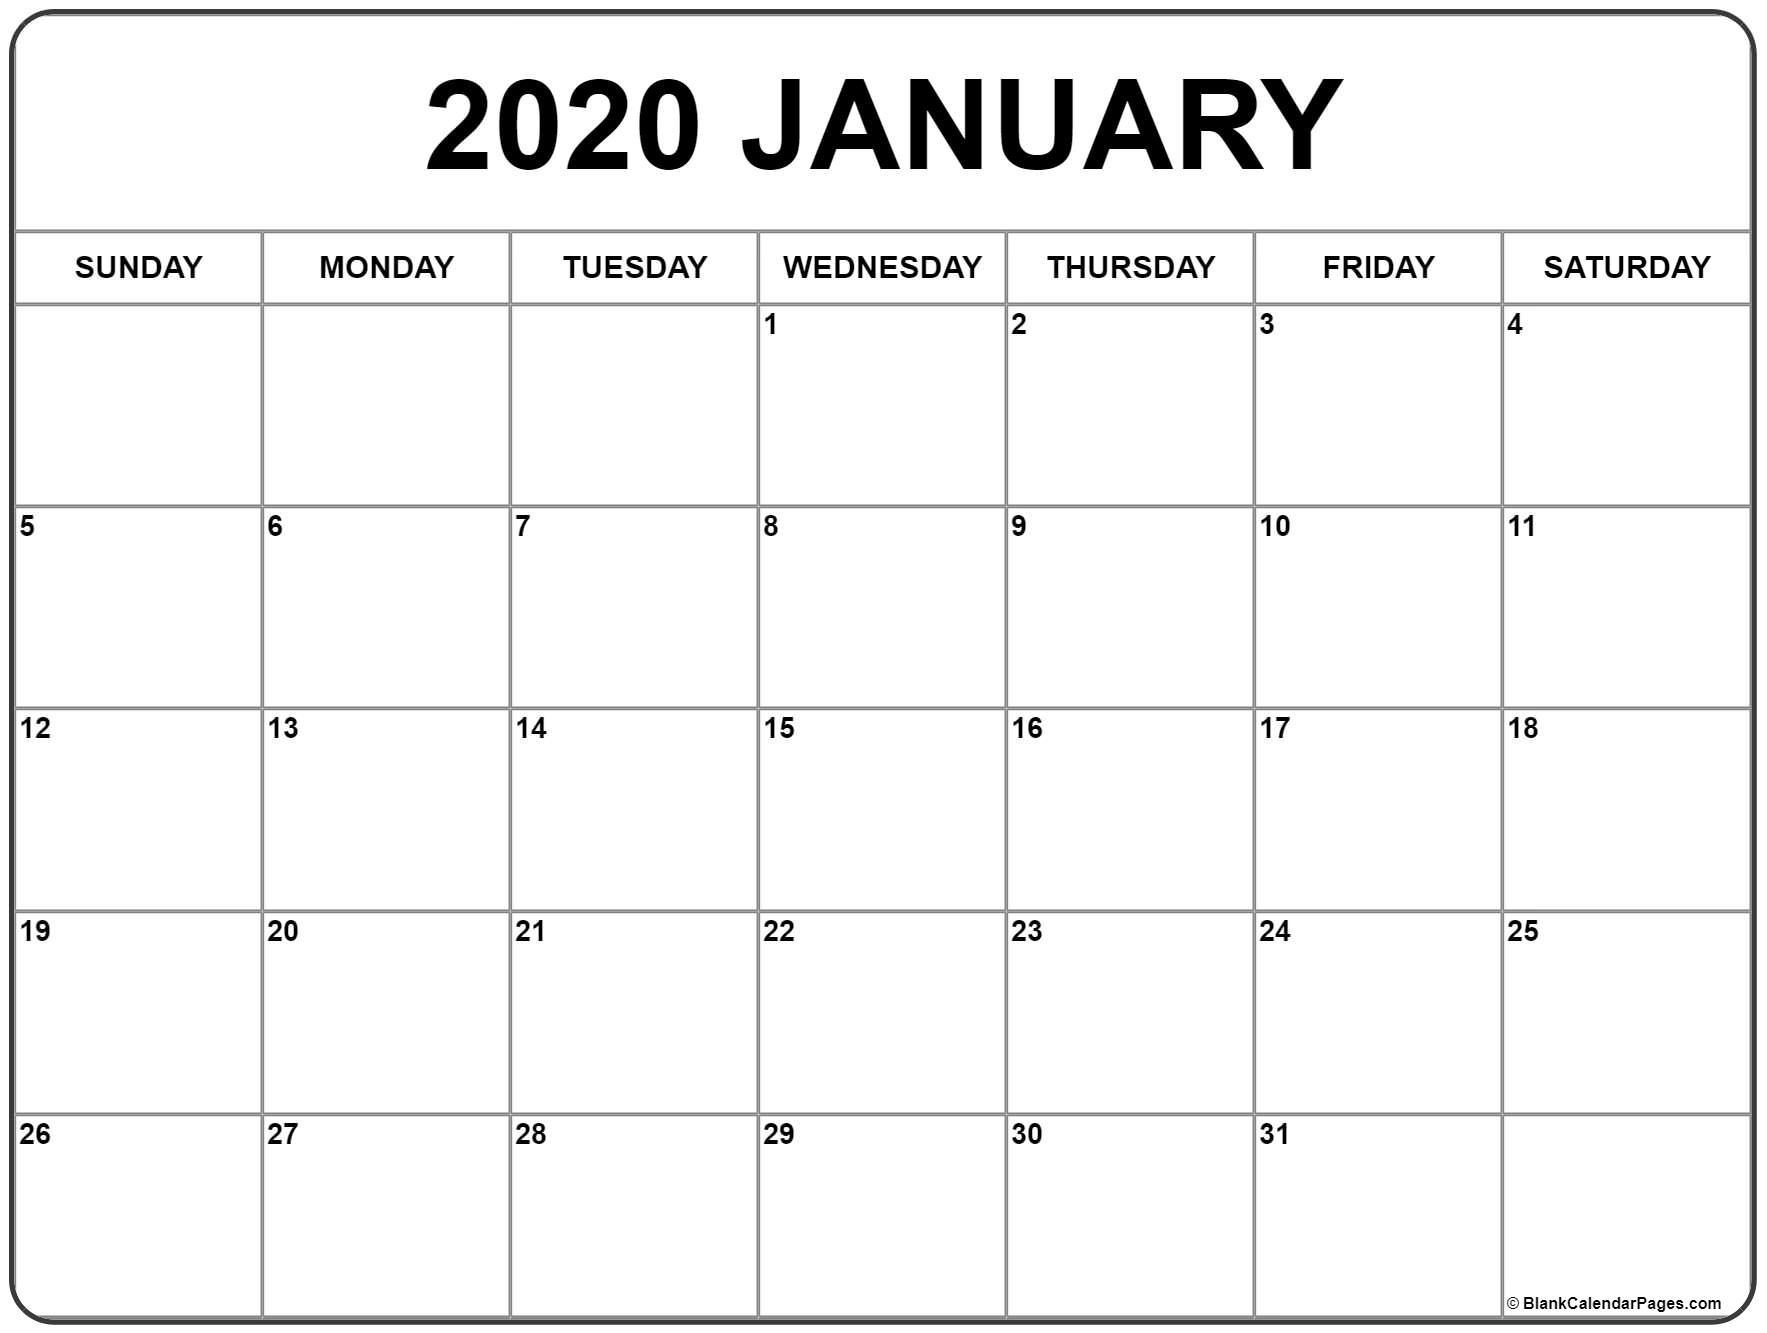 January 2020 Calendar | Free Printable Monthly Calendars  Calendar 2020 Free Printable